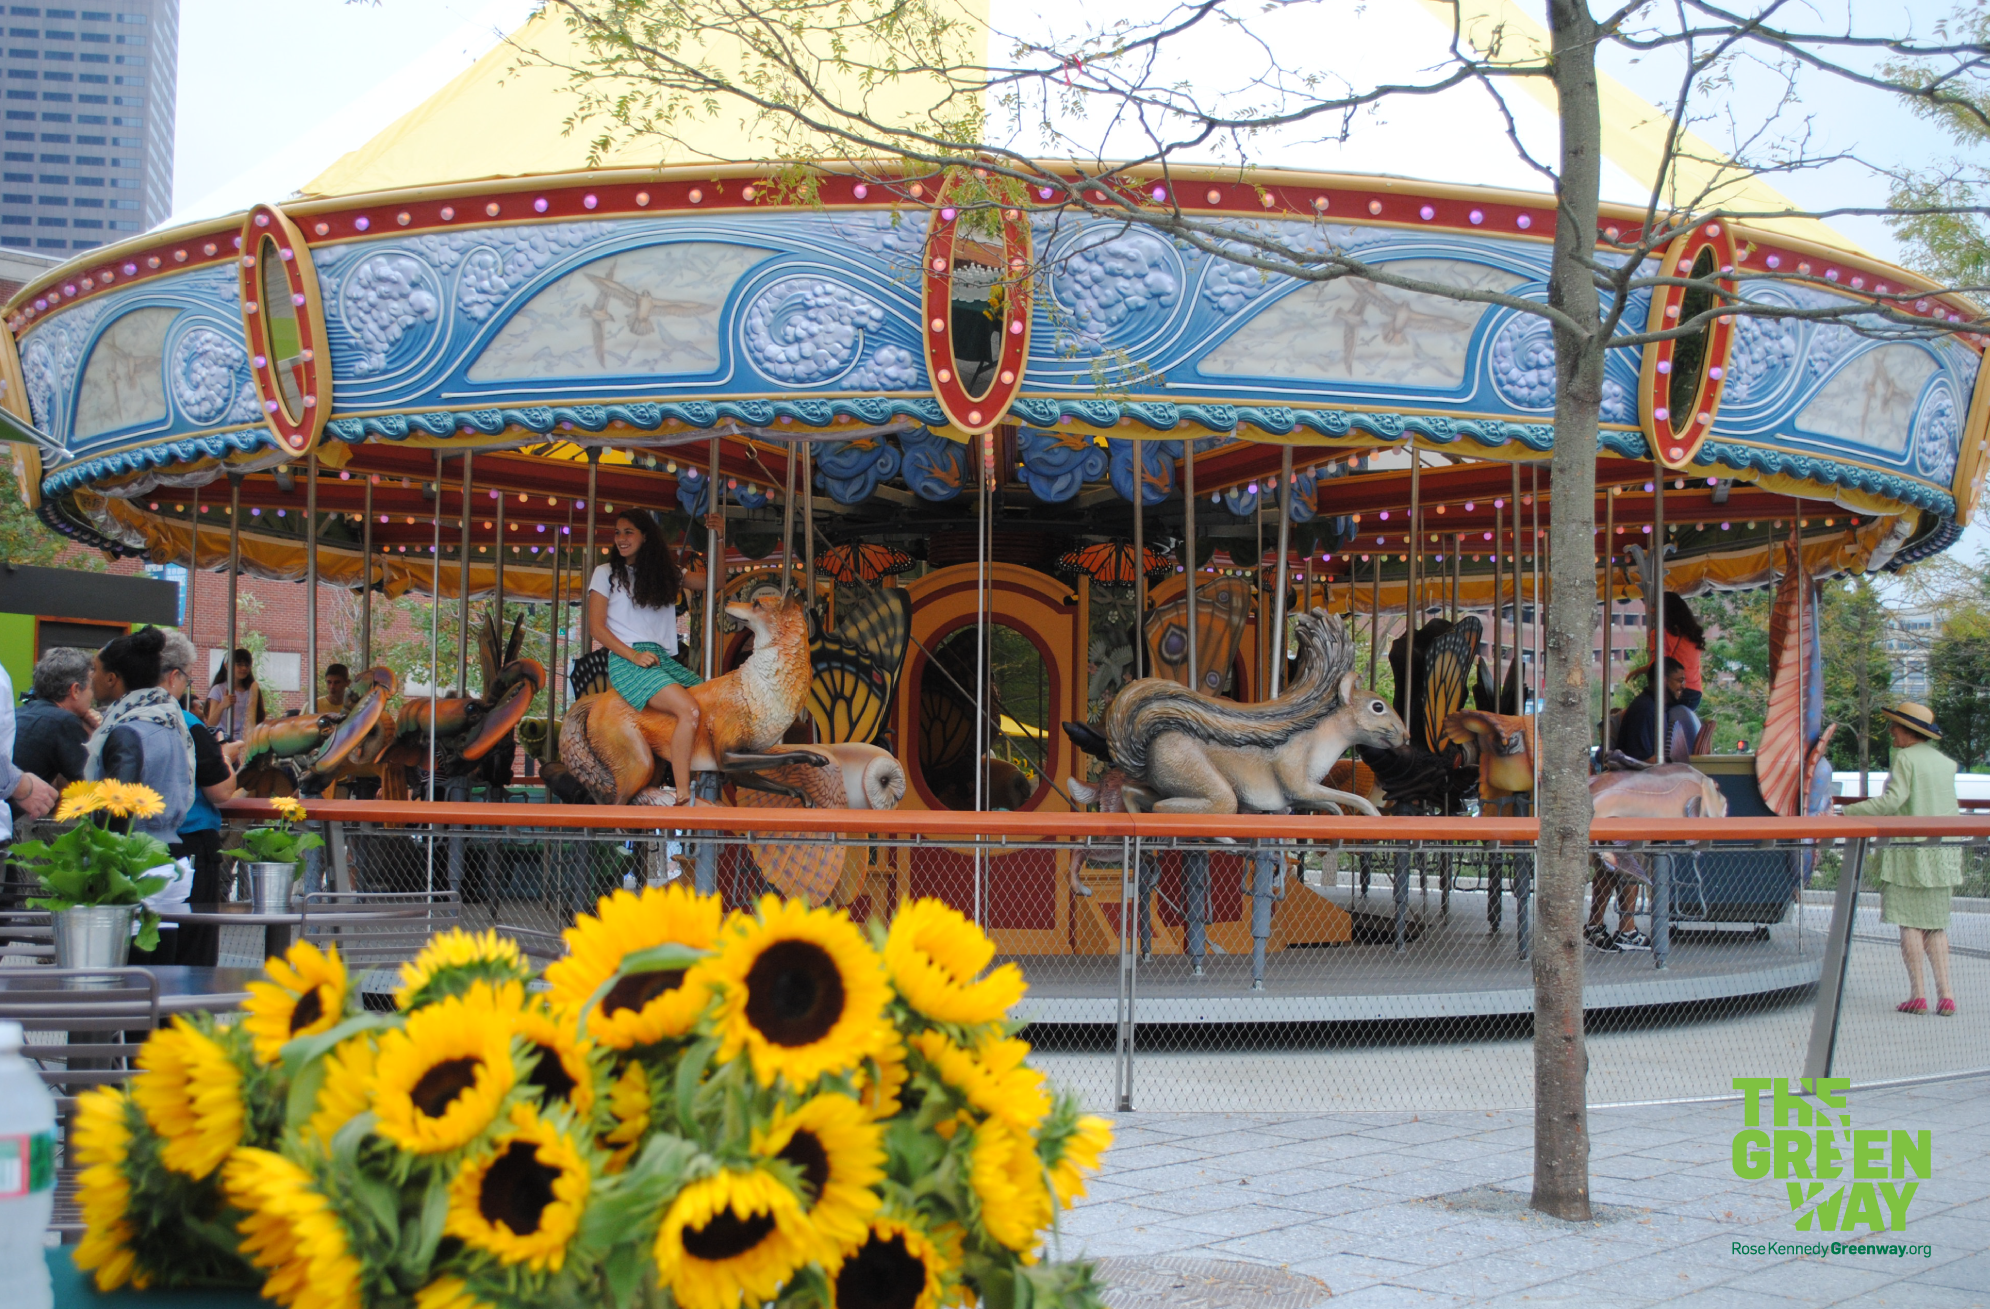 Greenway Carousel Ride Entertainments